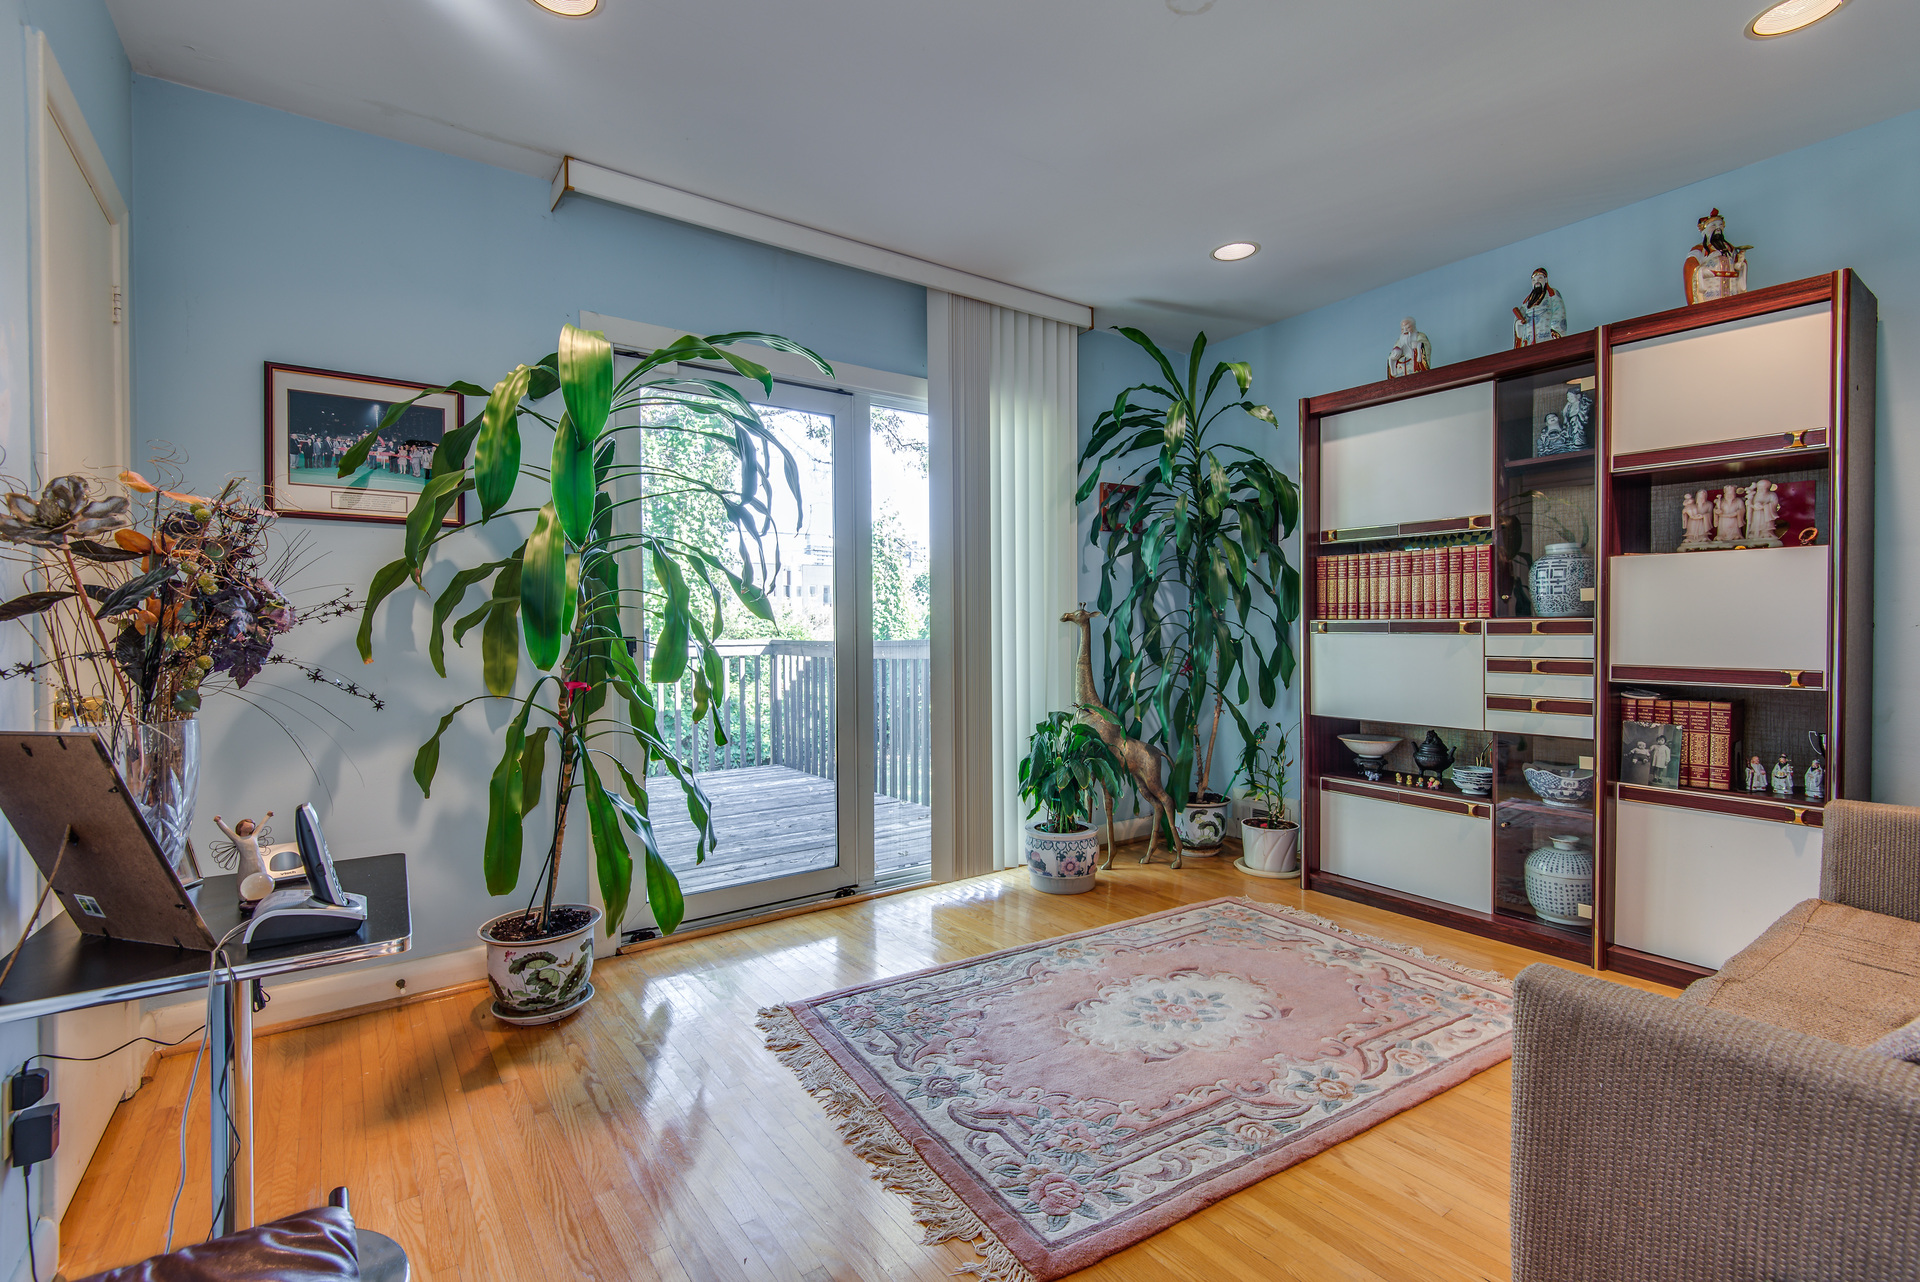 highres_022 at SALE #467 - 19 Burbank Drive, Bayview Village, Toronto